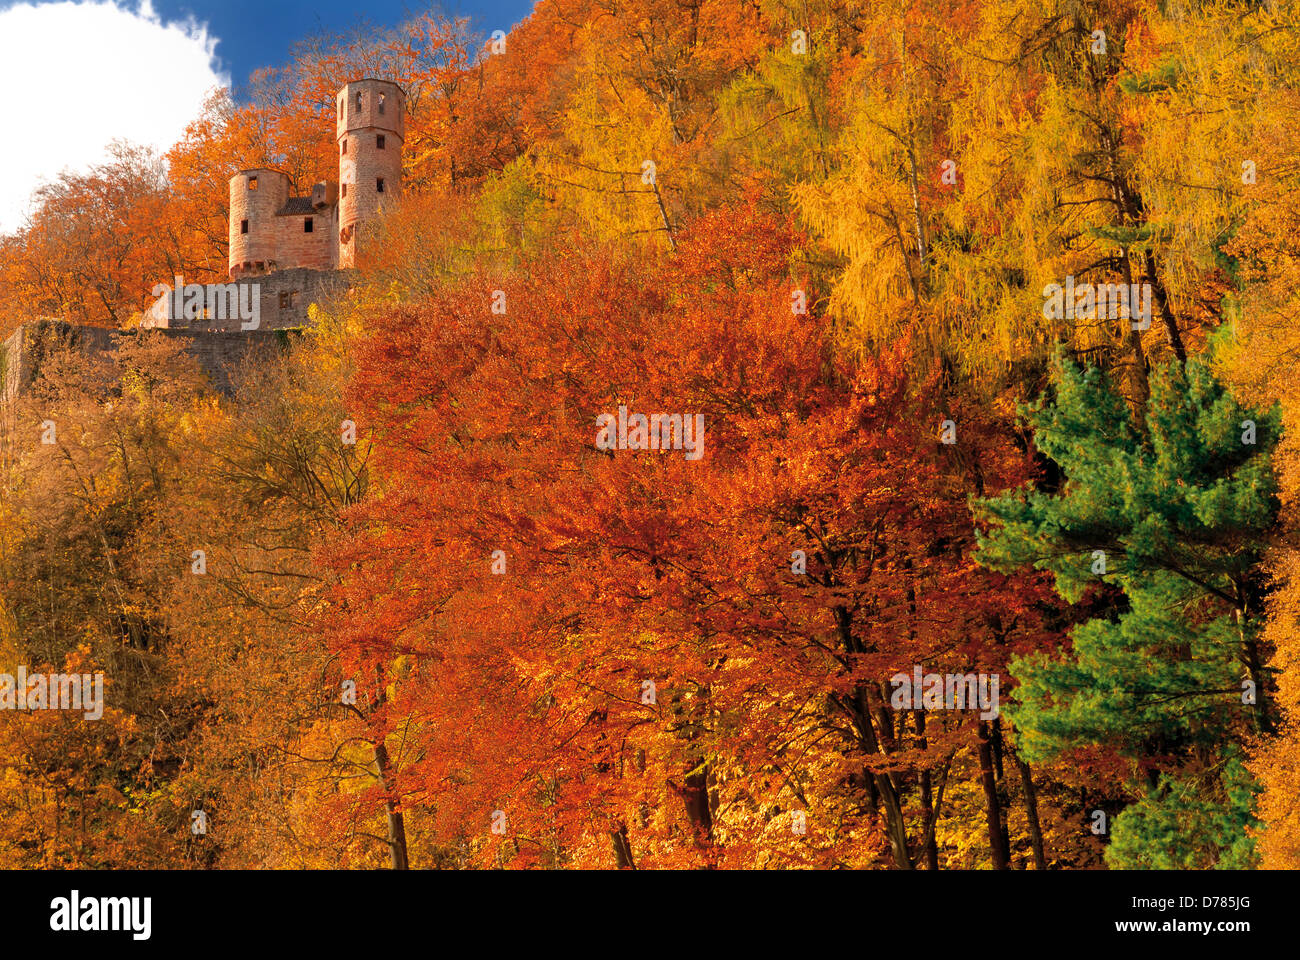 """Germany, Hessen: Medieval castle """"Schadeck"""" surrounded by autumn forest in Neckarsteinach Stock Photo"""